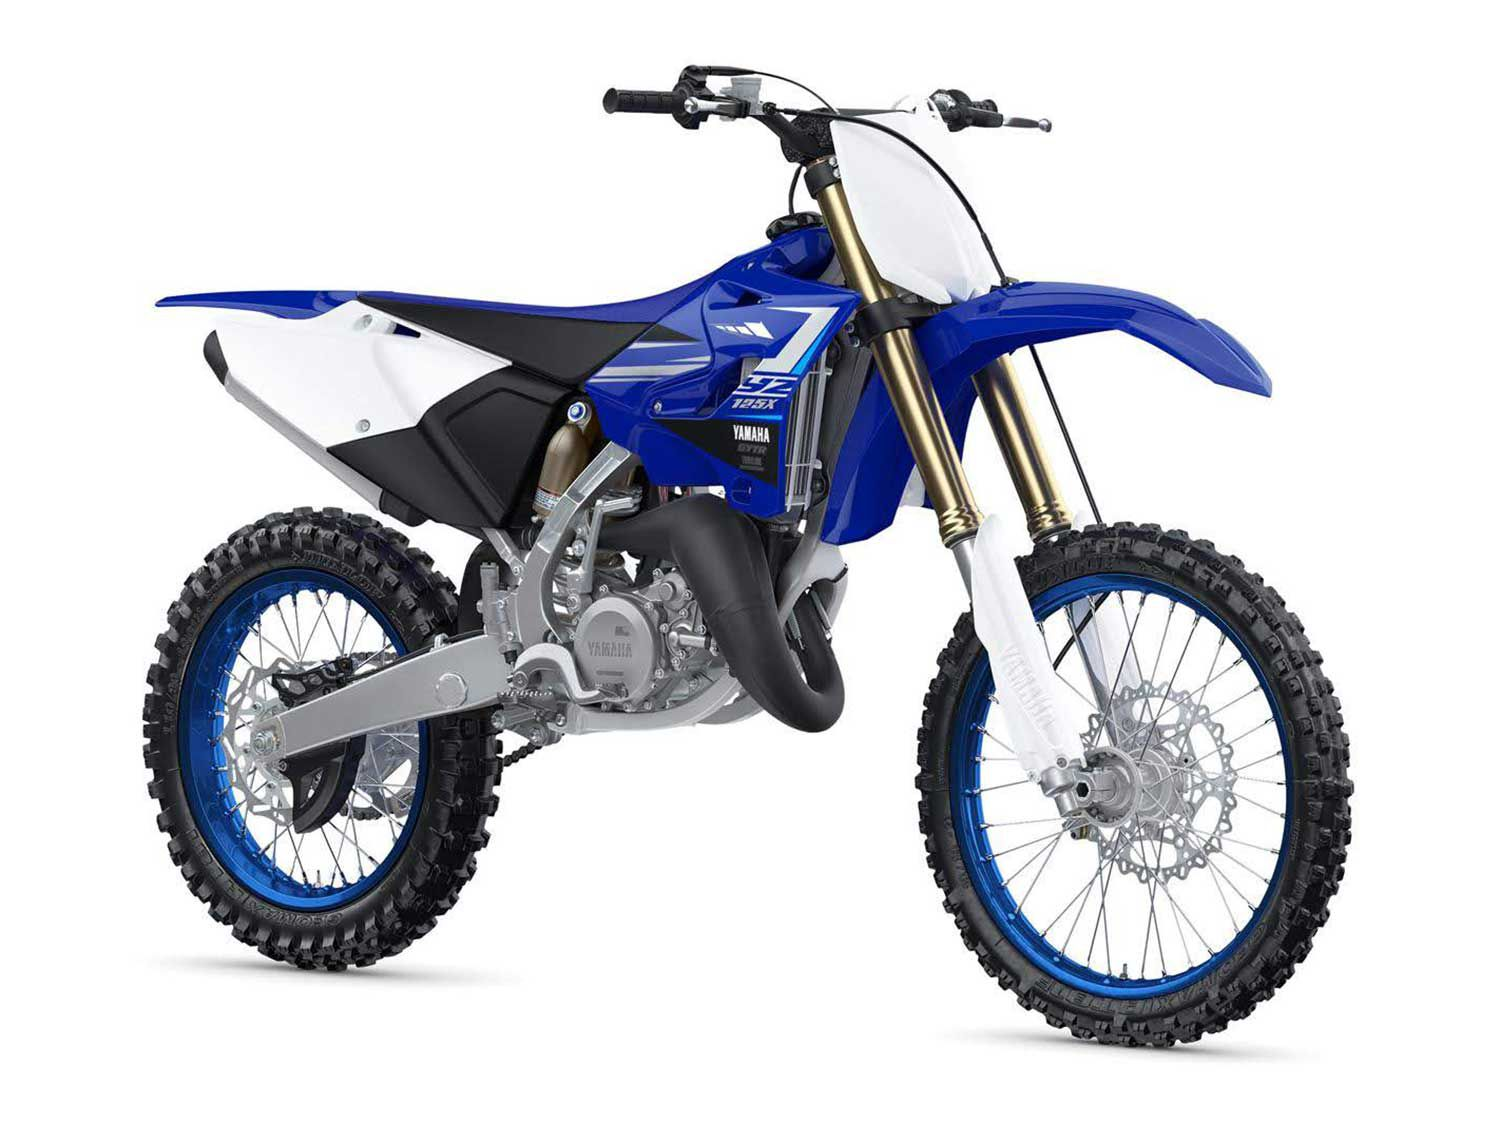 "<a href=""https://www.motorcyclistonline.com/2020-yamaha-yz125x-first-look/"">2020 Yamaha YZ125X First Look</a>"